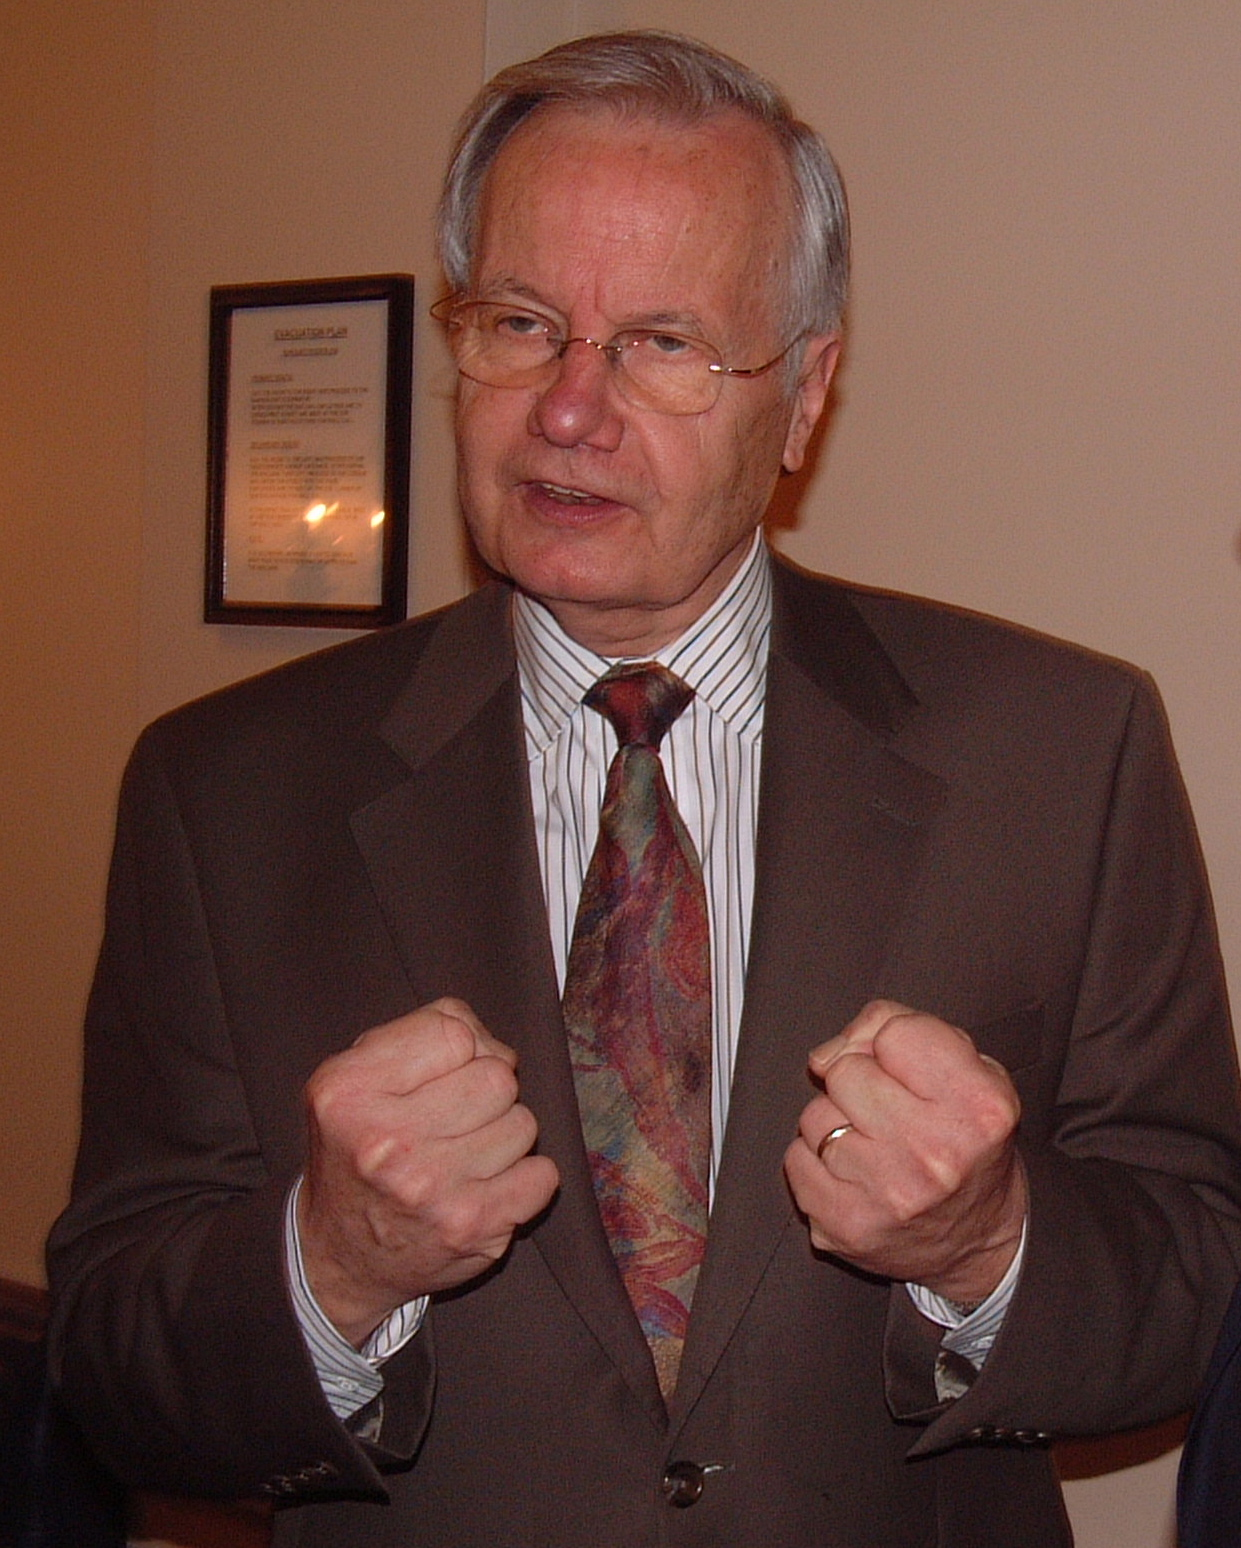 File:BILL MOYERS 24 May 2005.jpg - Wikipedia, the free encyclopedia